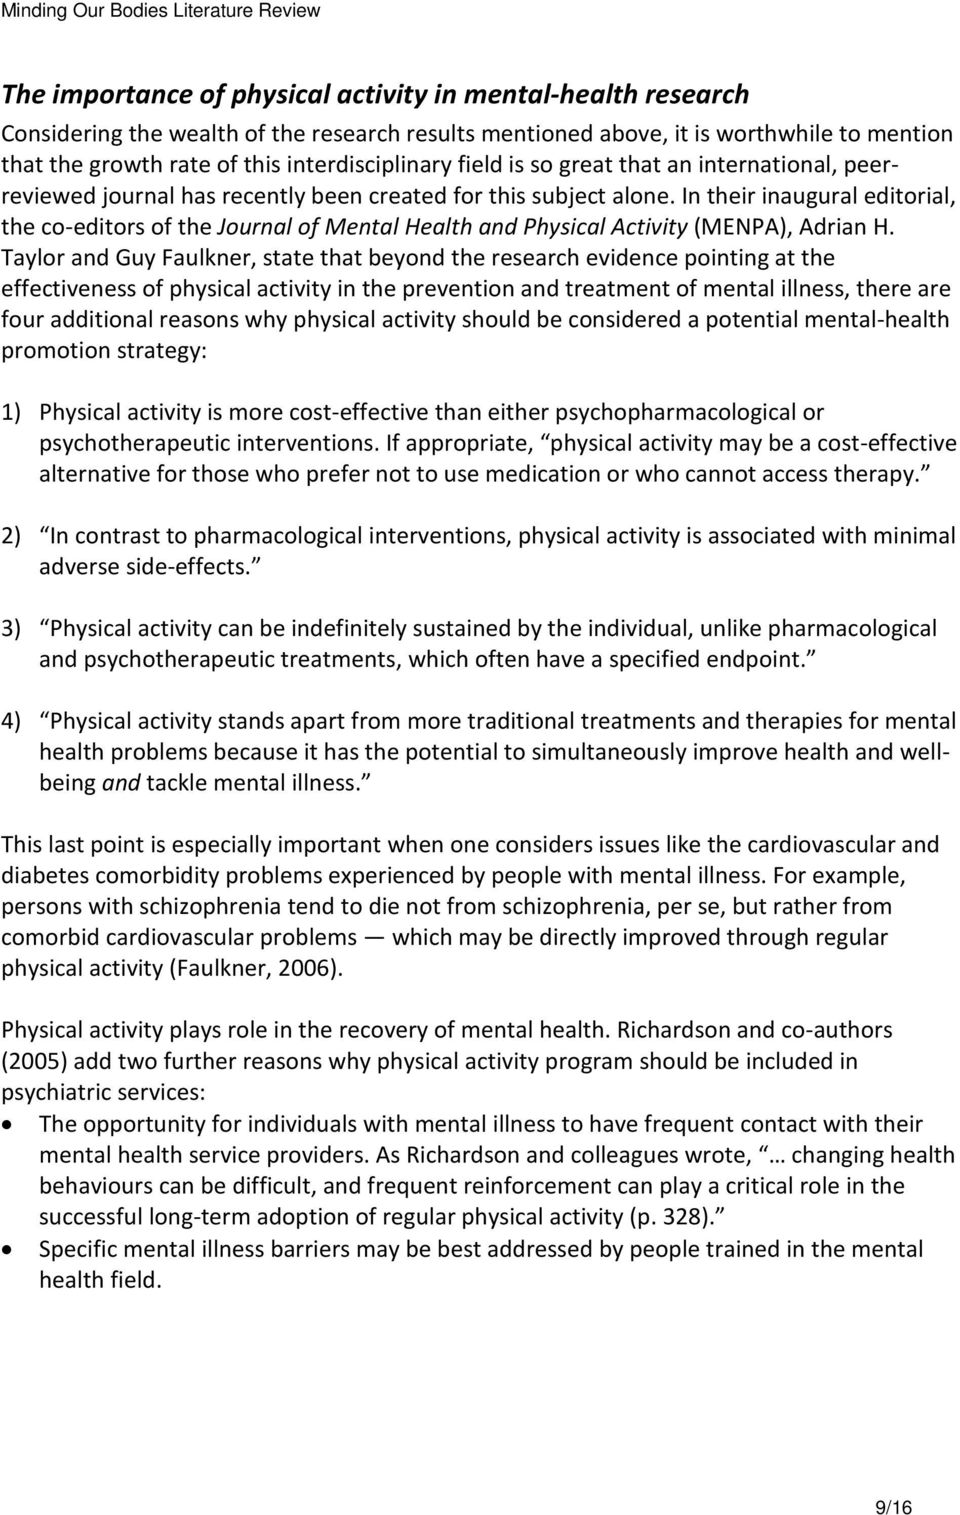 In their inaugural editorial, the co-editors of the Journal of Mental Health and Physical Activity (MENPA), Adrian H.